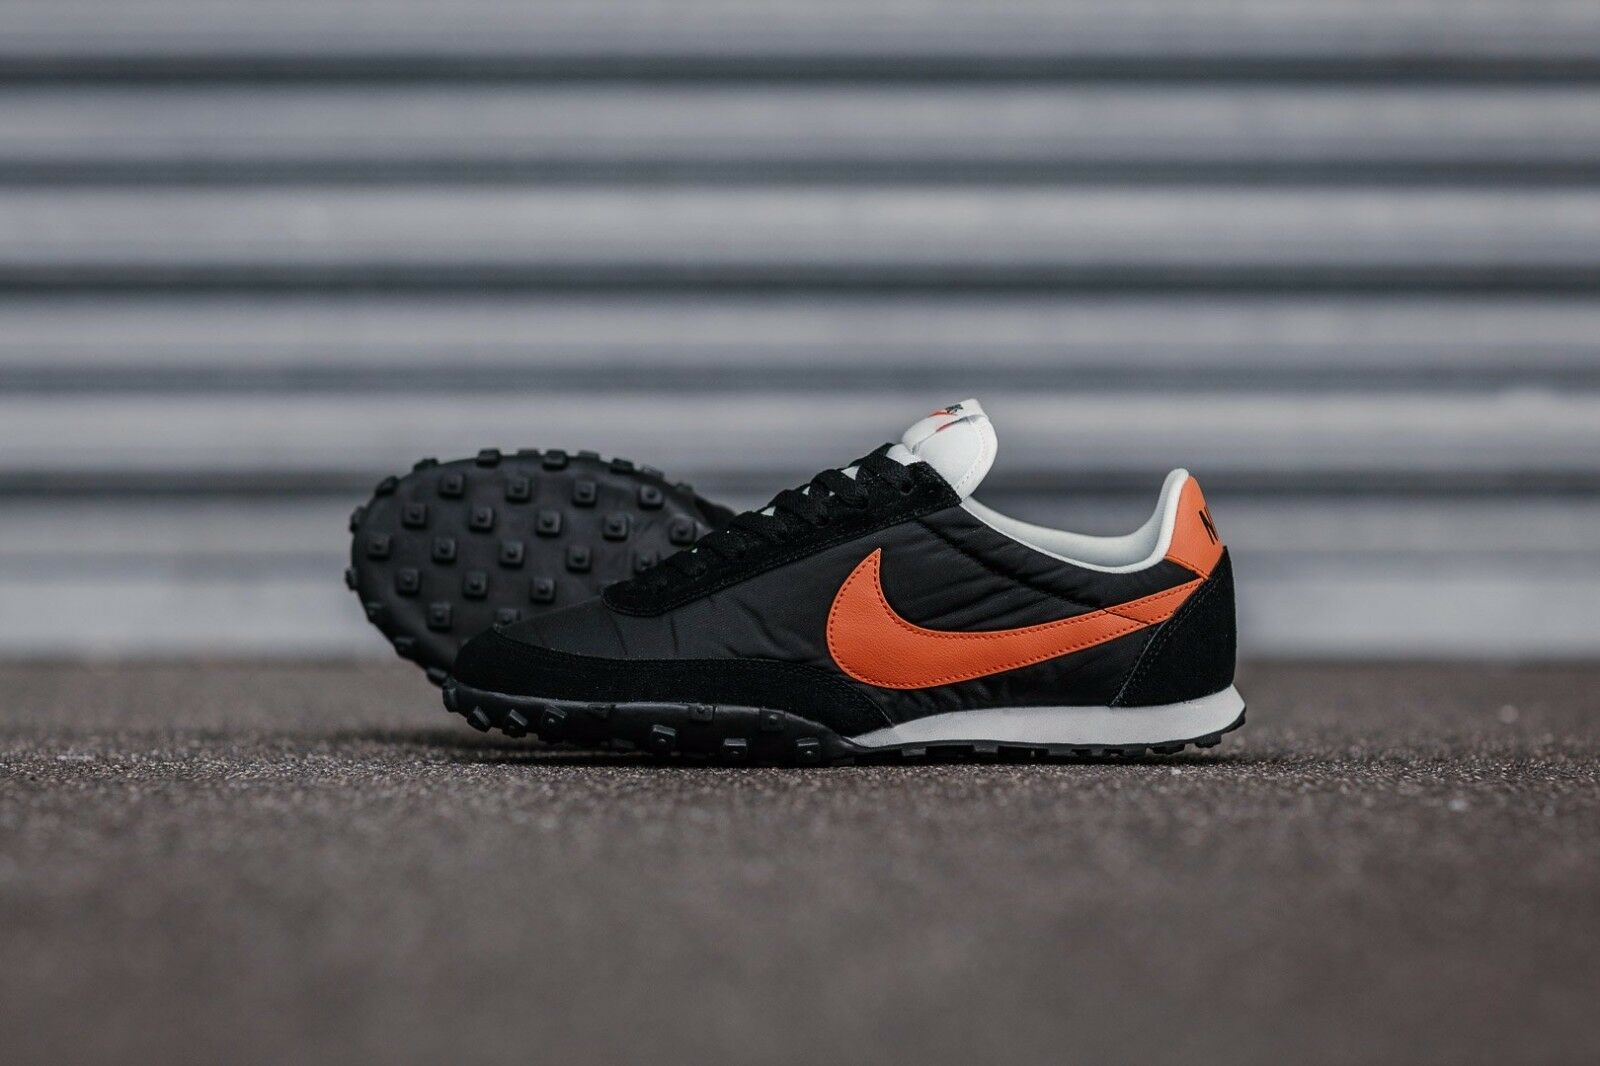 Nike Waffle Racer 17 Black Orange size 13. 876255-003. internationalist